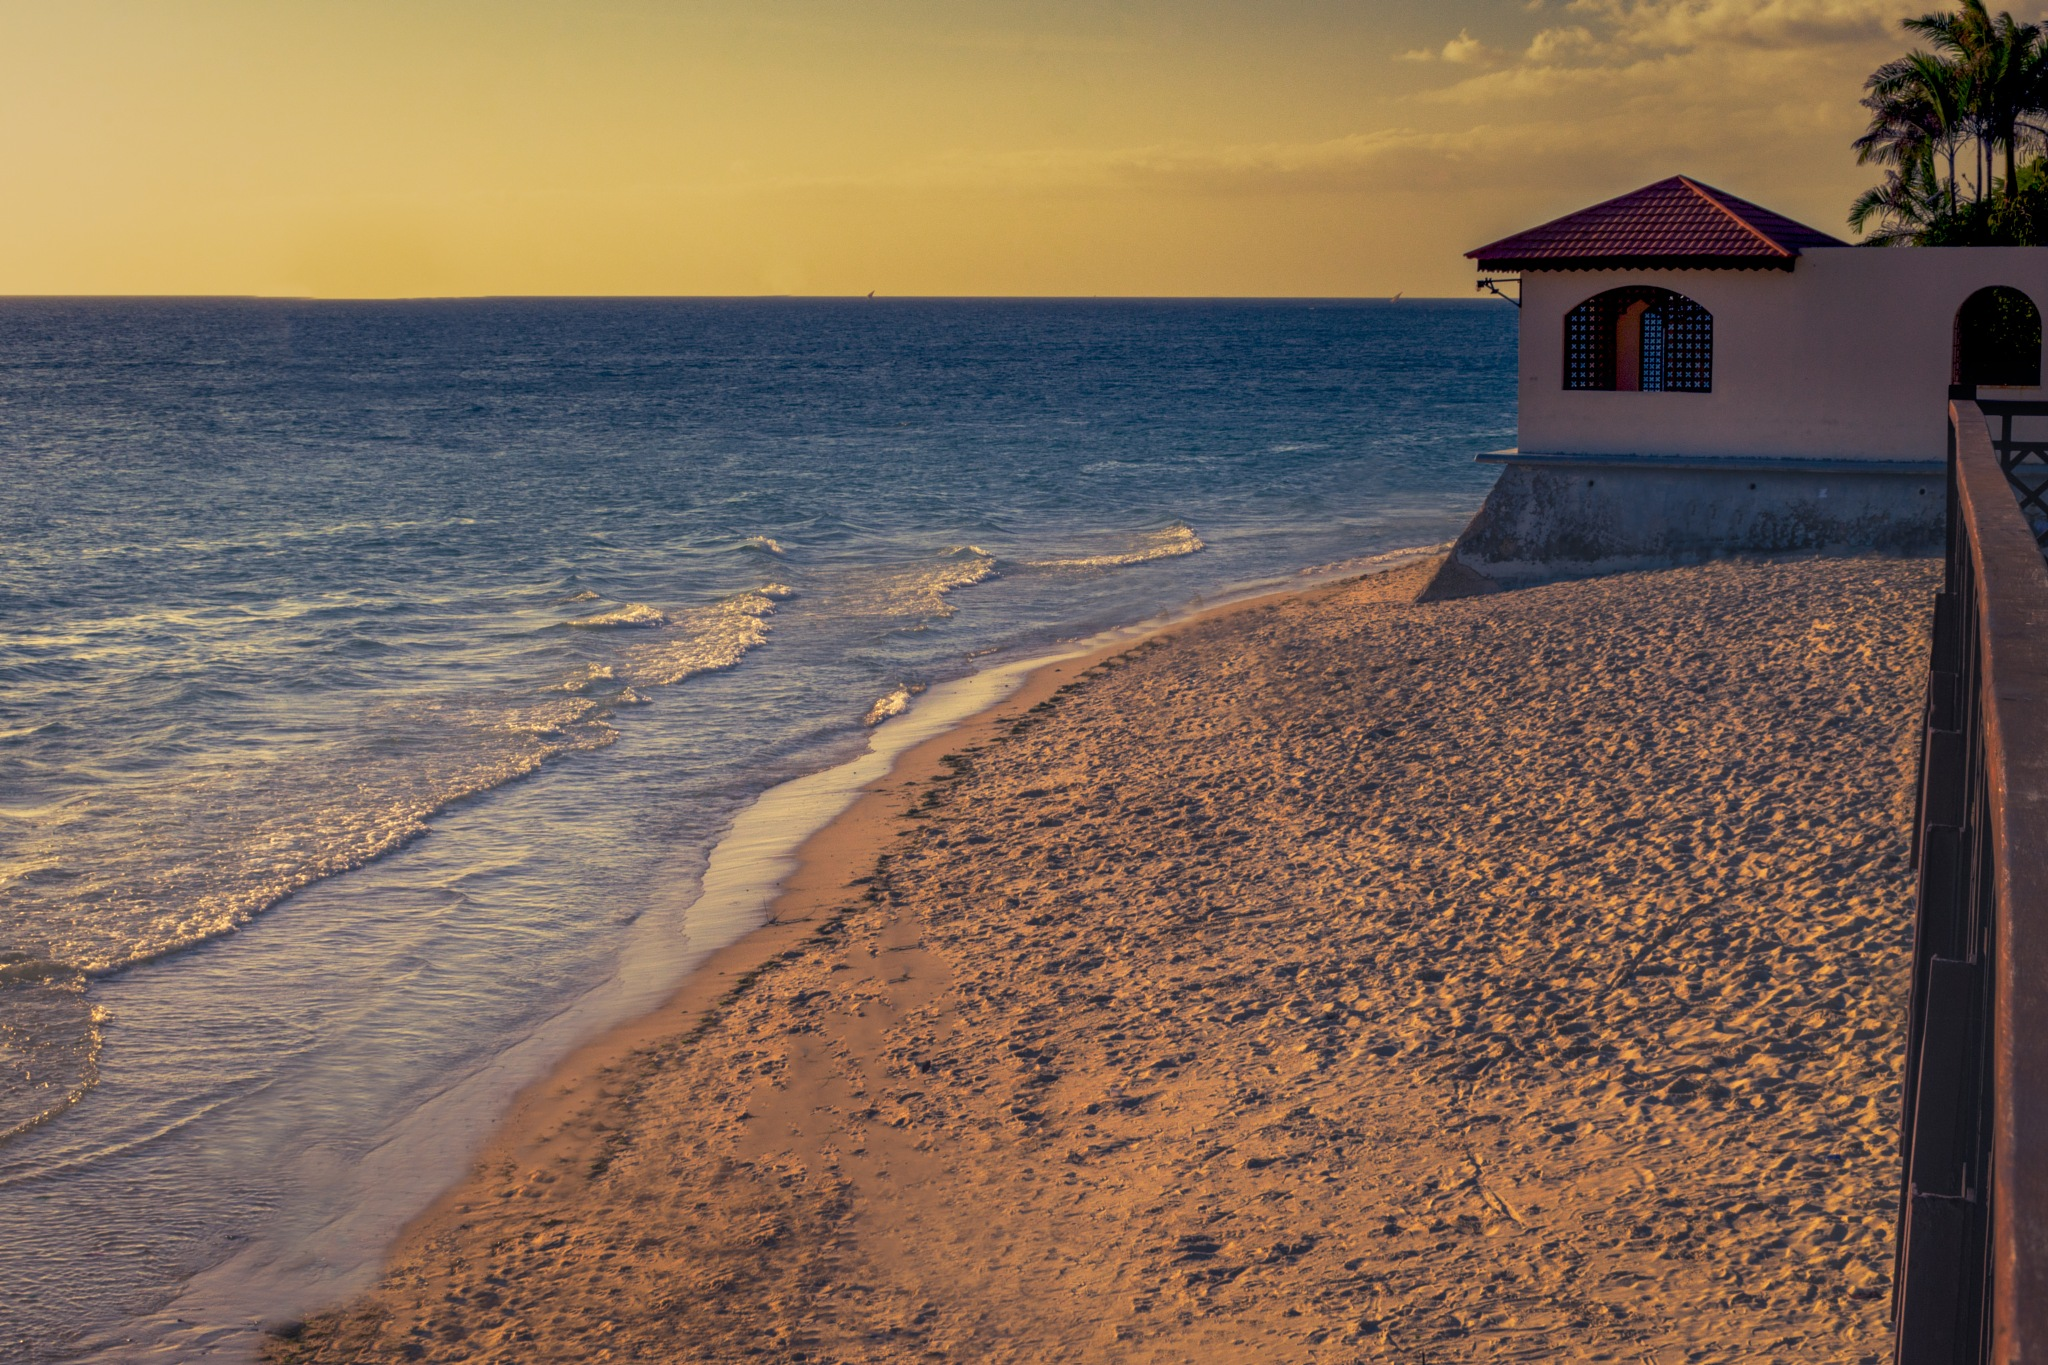 Sunset vibes by the beach by Laith Soaadi